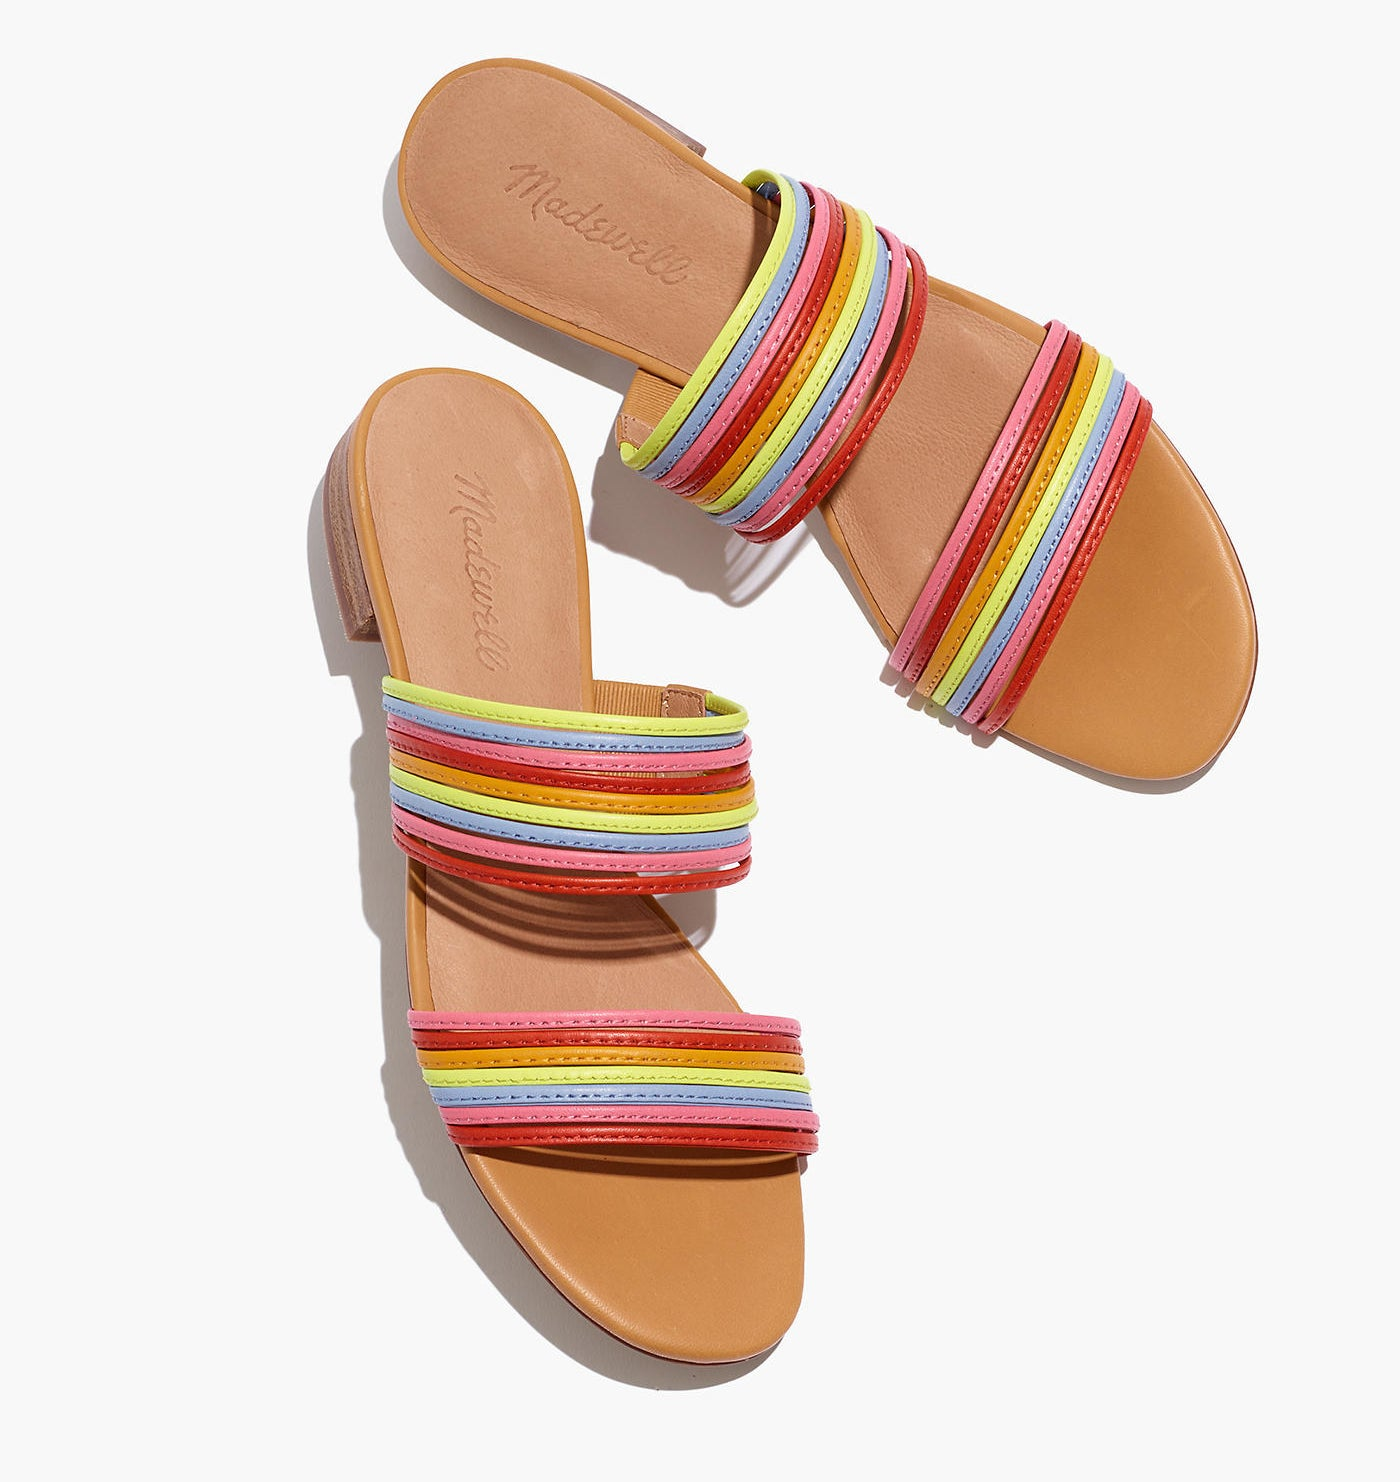 The slides with two sets of thin straps across the footbed in different rainbow colors